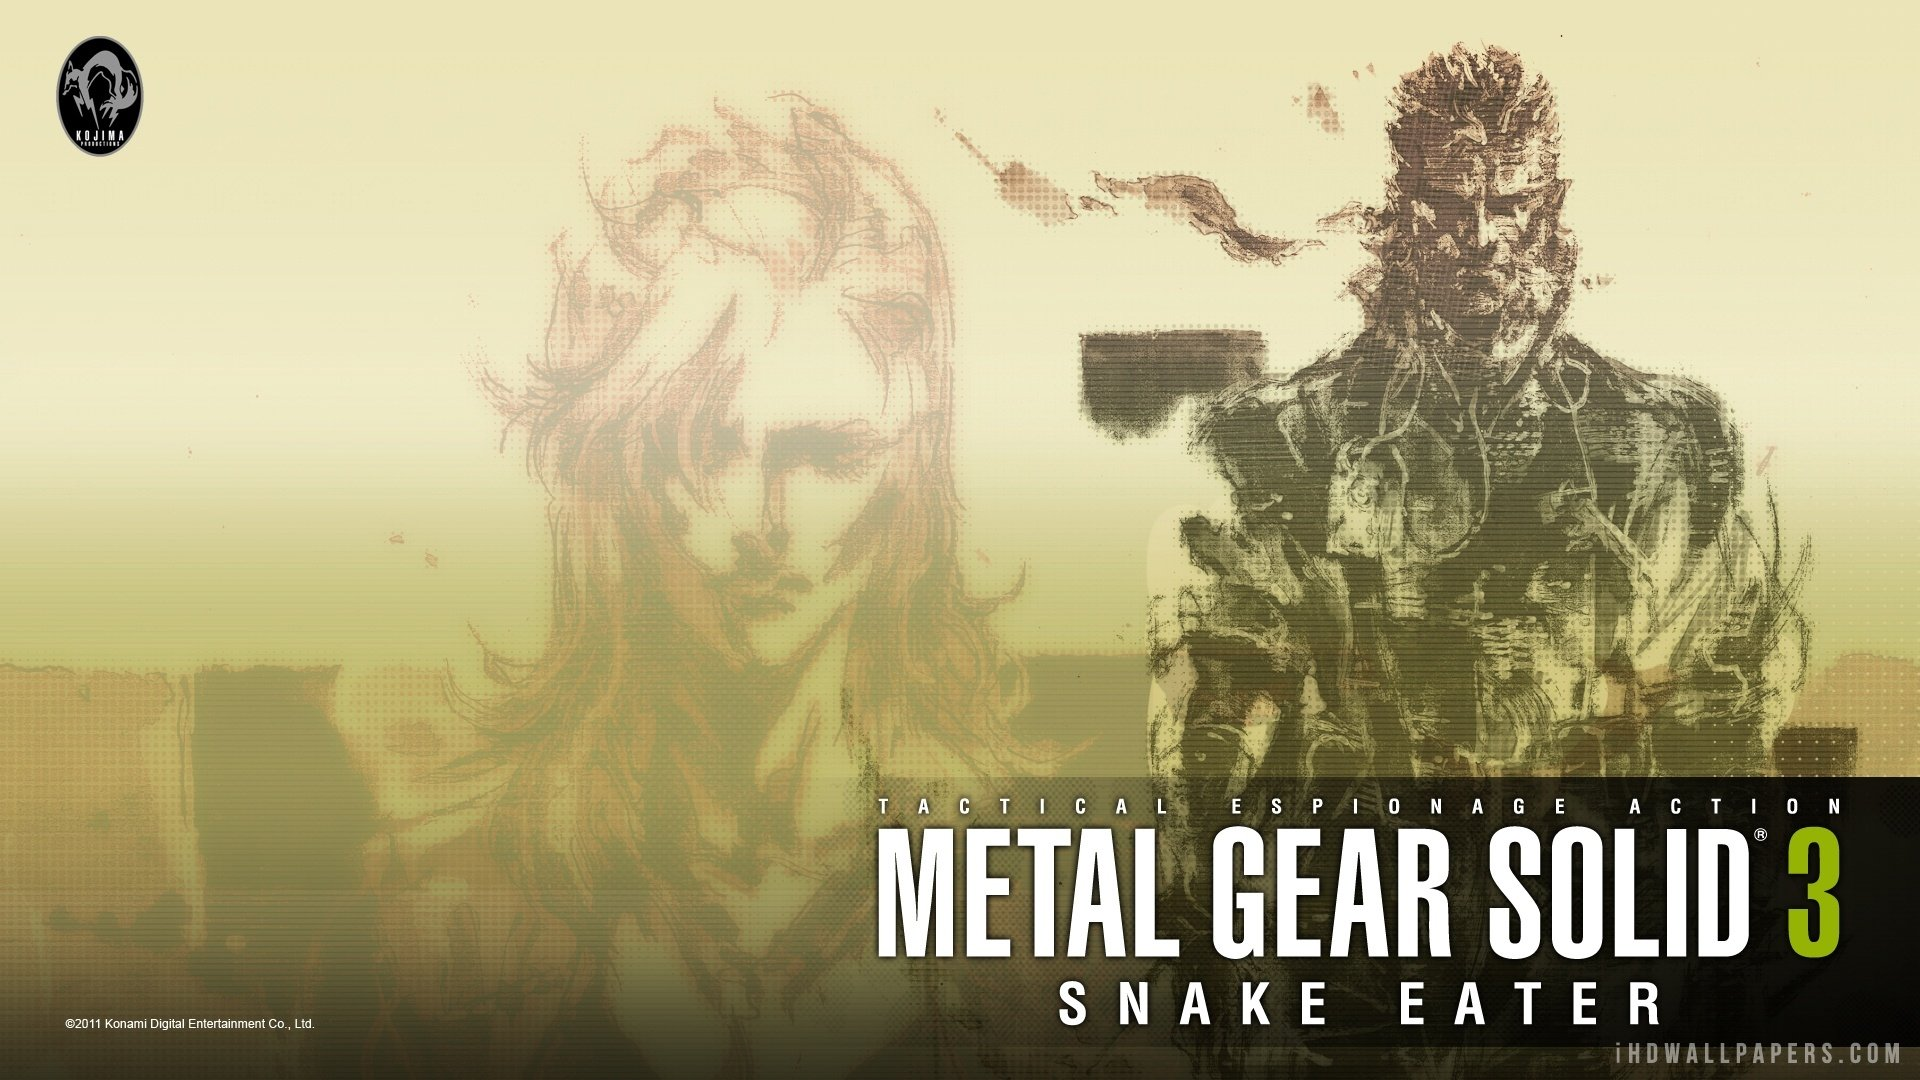 Metal Gear Solid 3 Snake Eater Hd Wallpaper Background Image